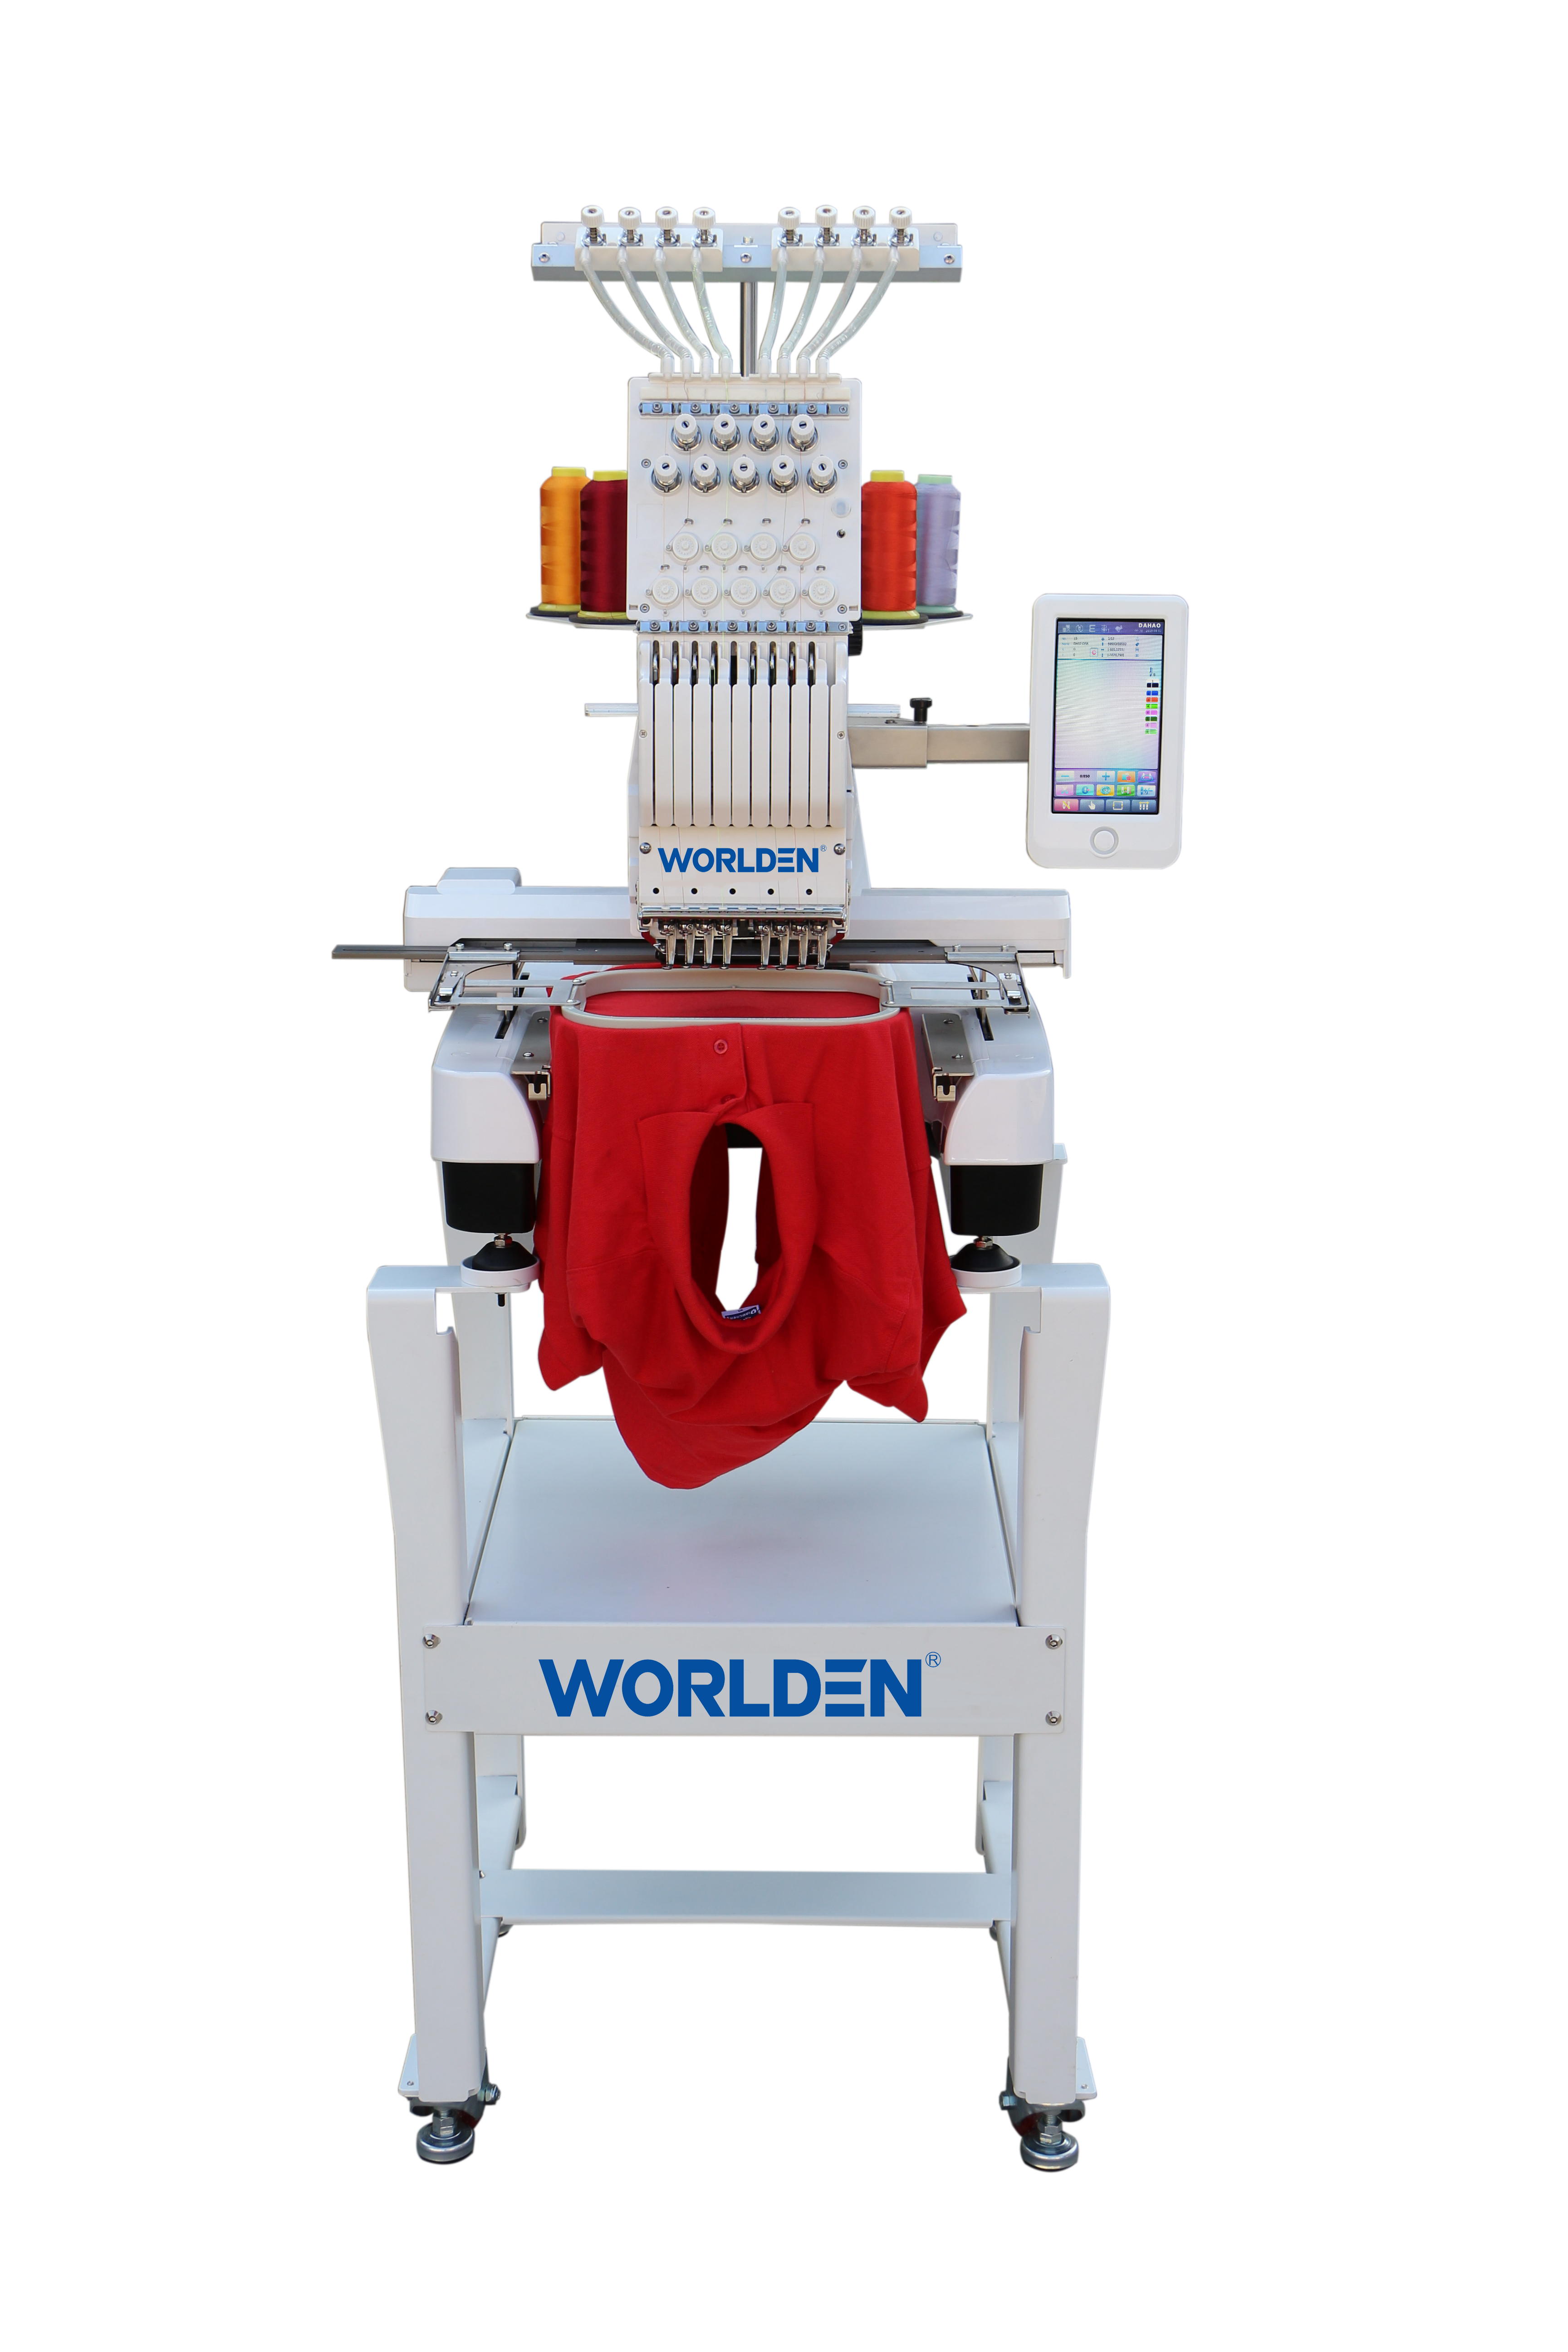 New Type WD-3620 single head 15 needles DAHAO new A15 Computerized  embroidery machine